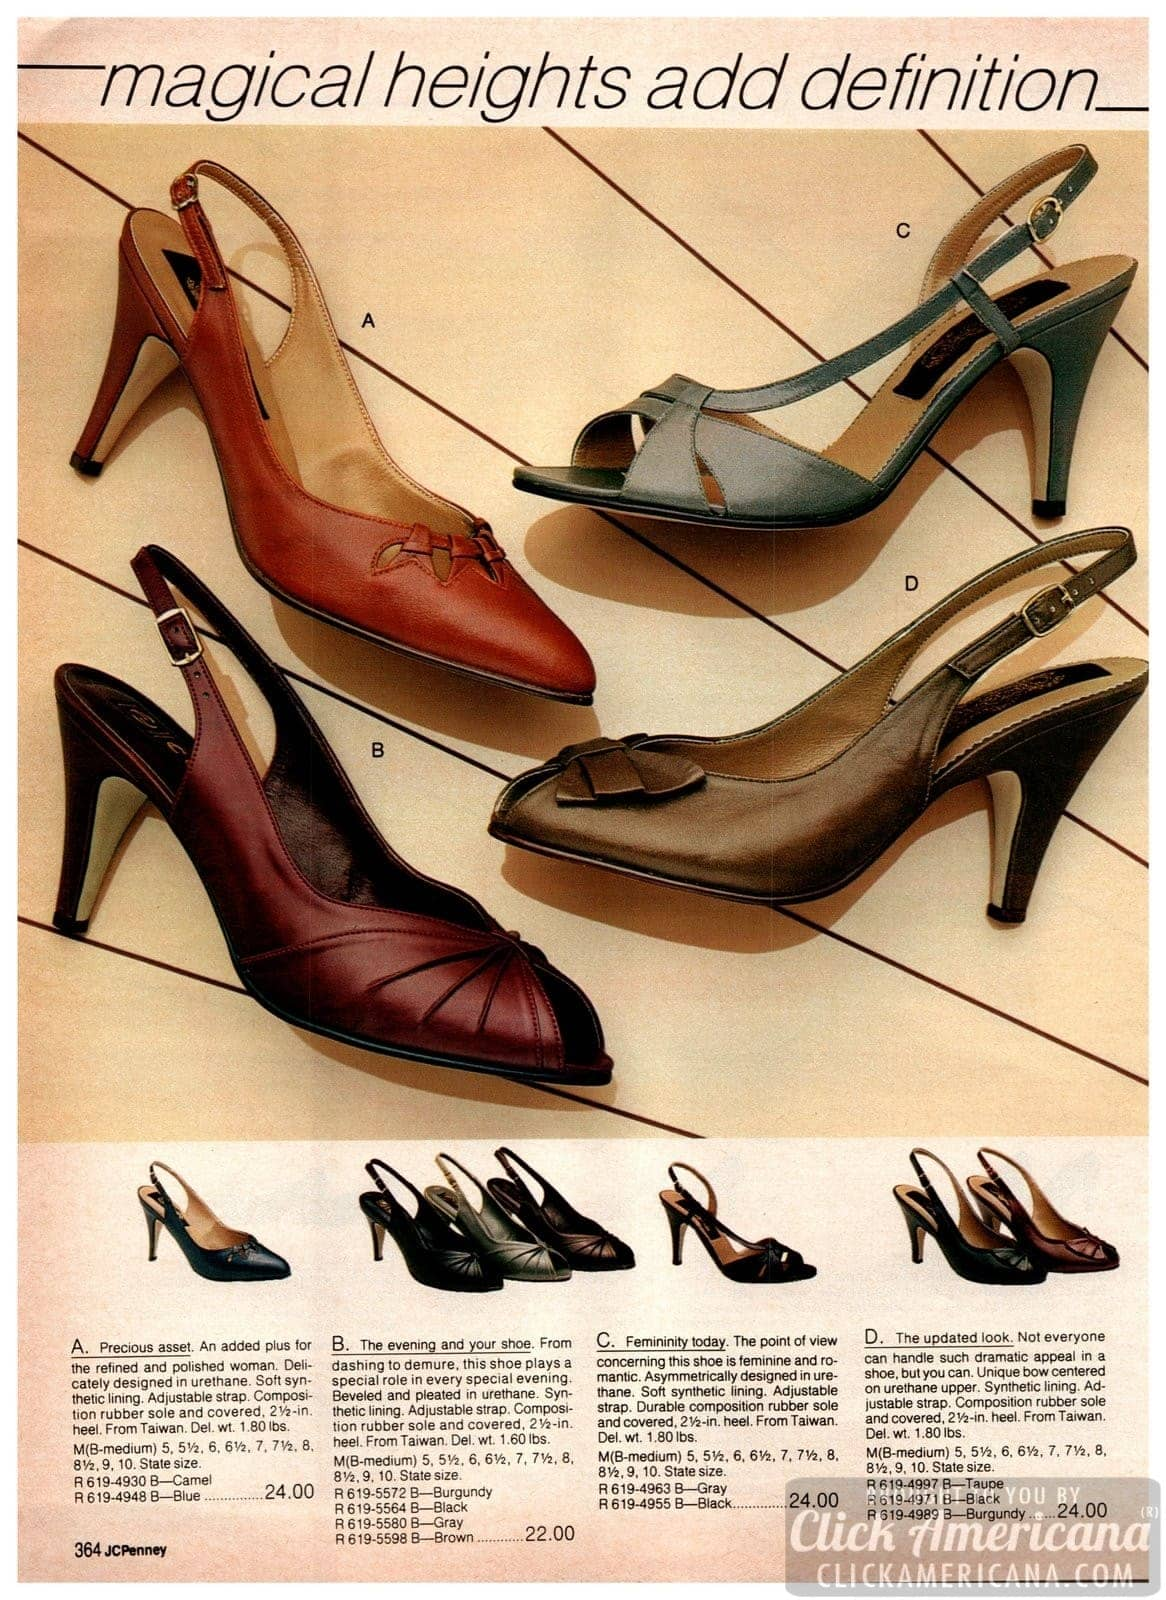 Vintage strappy slingback pumps with 2-1/2 inch heels - feminine and romantic styles